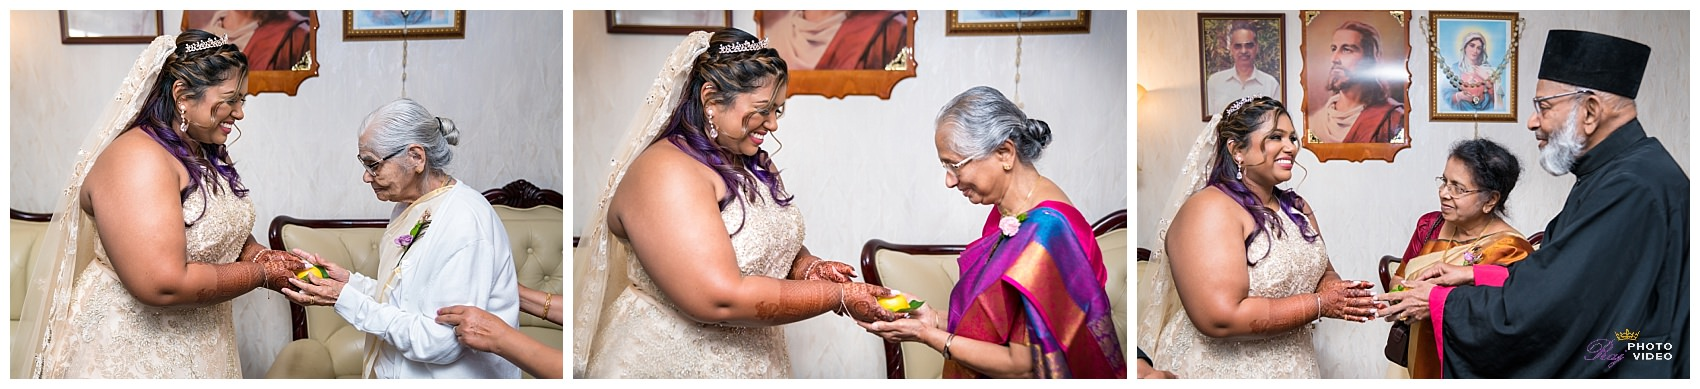 St Albert The Great Church Huntingdon Valley Pa South Indian Wedding Sona Boby